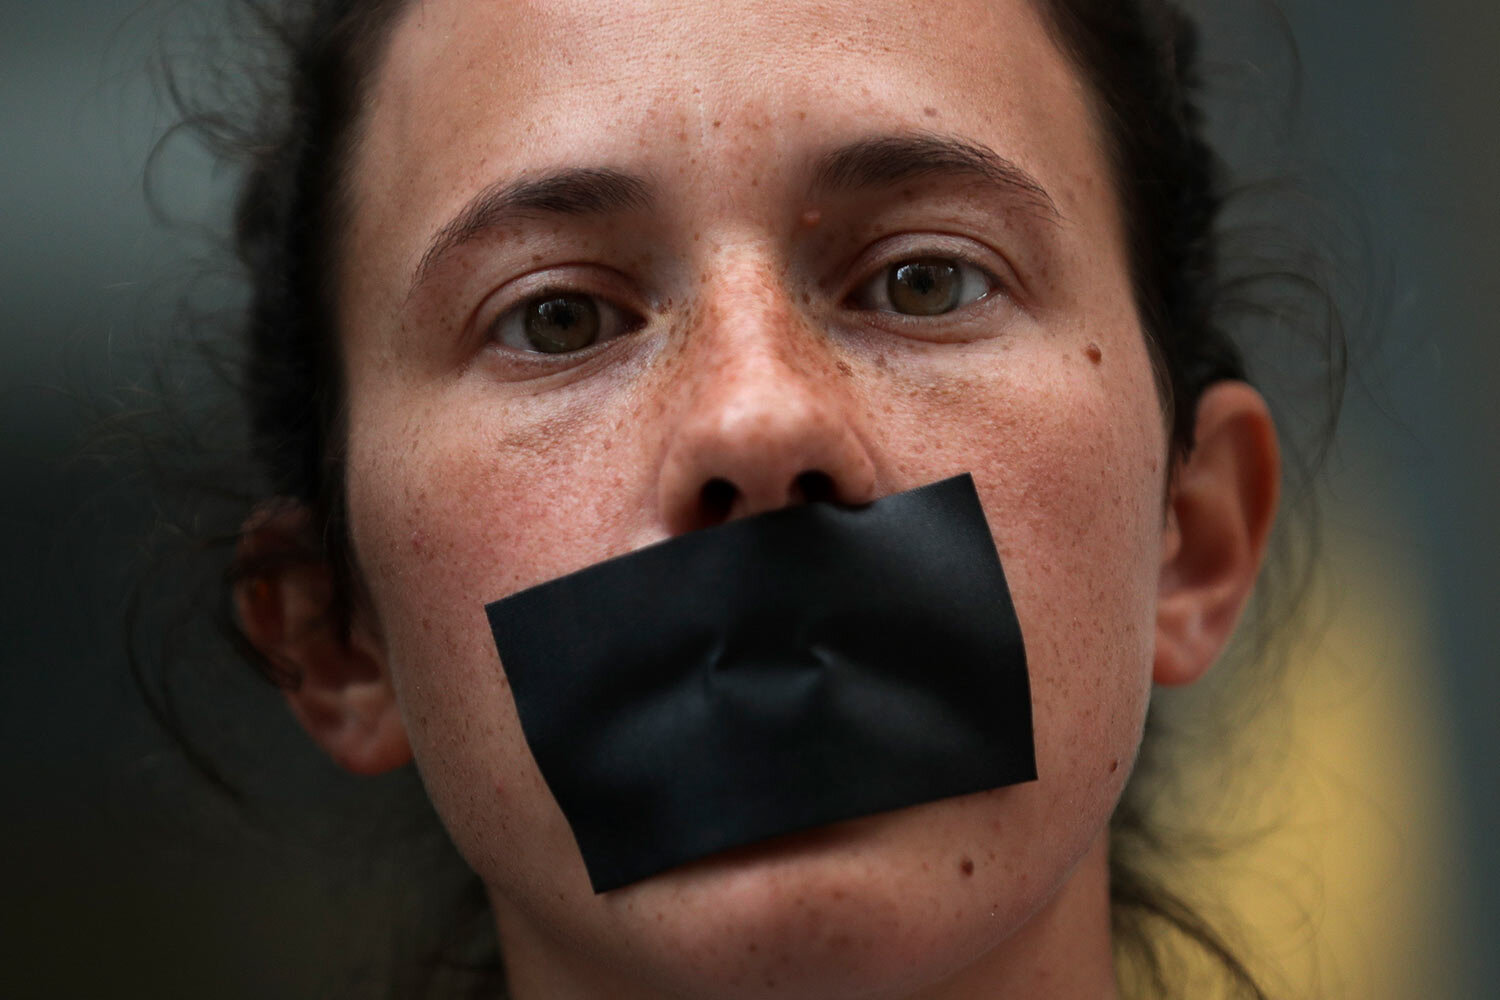 A pro-Catalonia independence protestor covers her mouth with tape as she protests in Brussels, Monday, Oct. 14, 2019. (AP Photo/Francisco Seco)